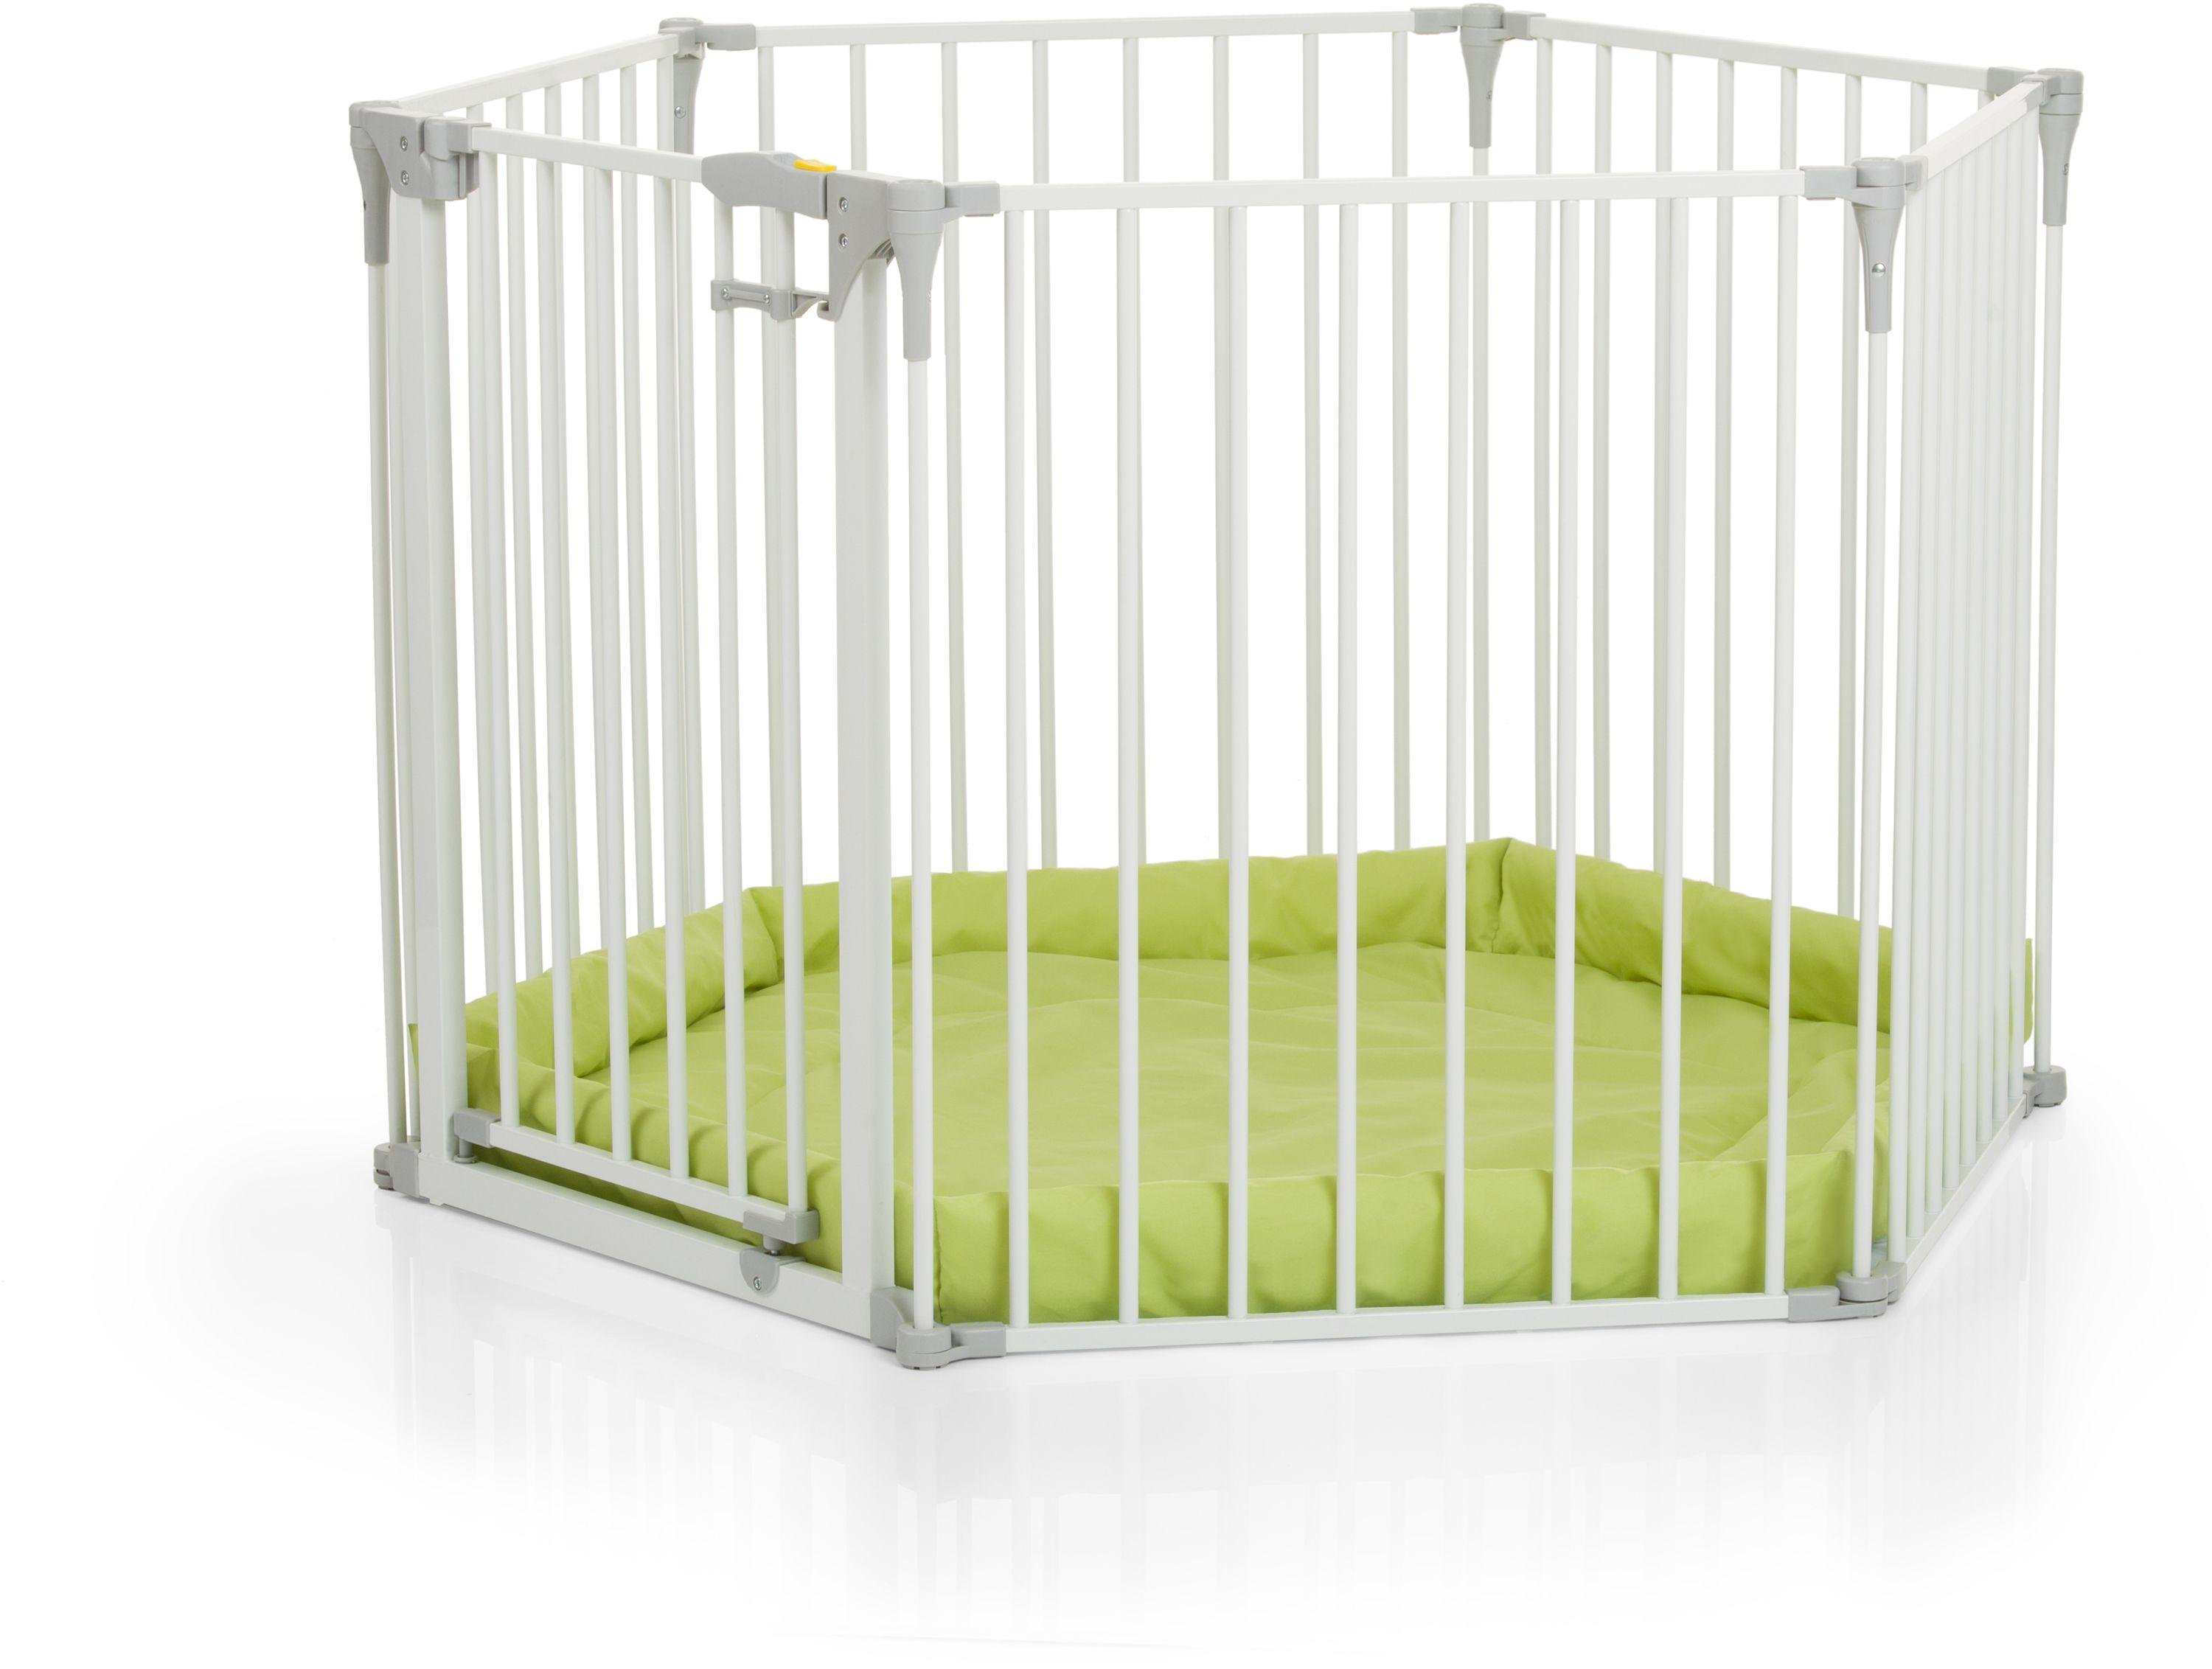 Image of Hauck - Baby Park Safety Gate Playpen